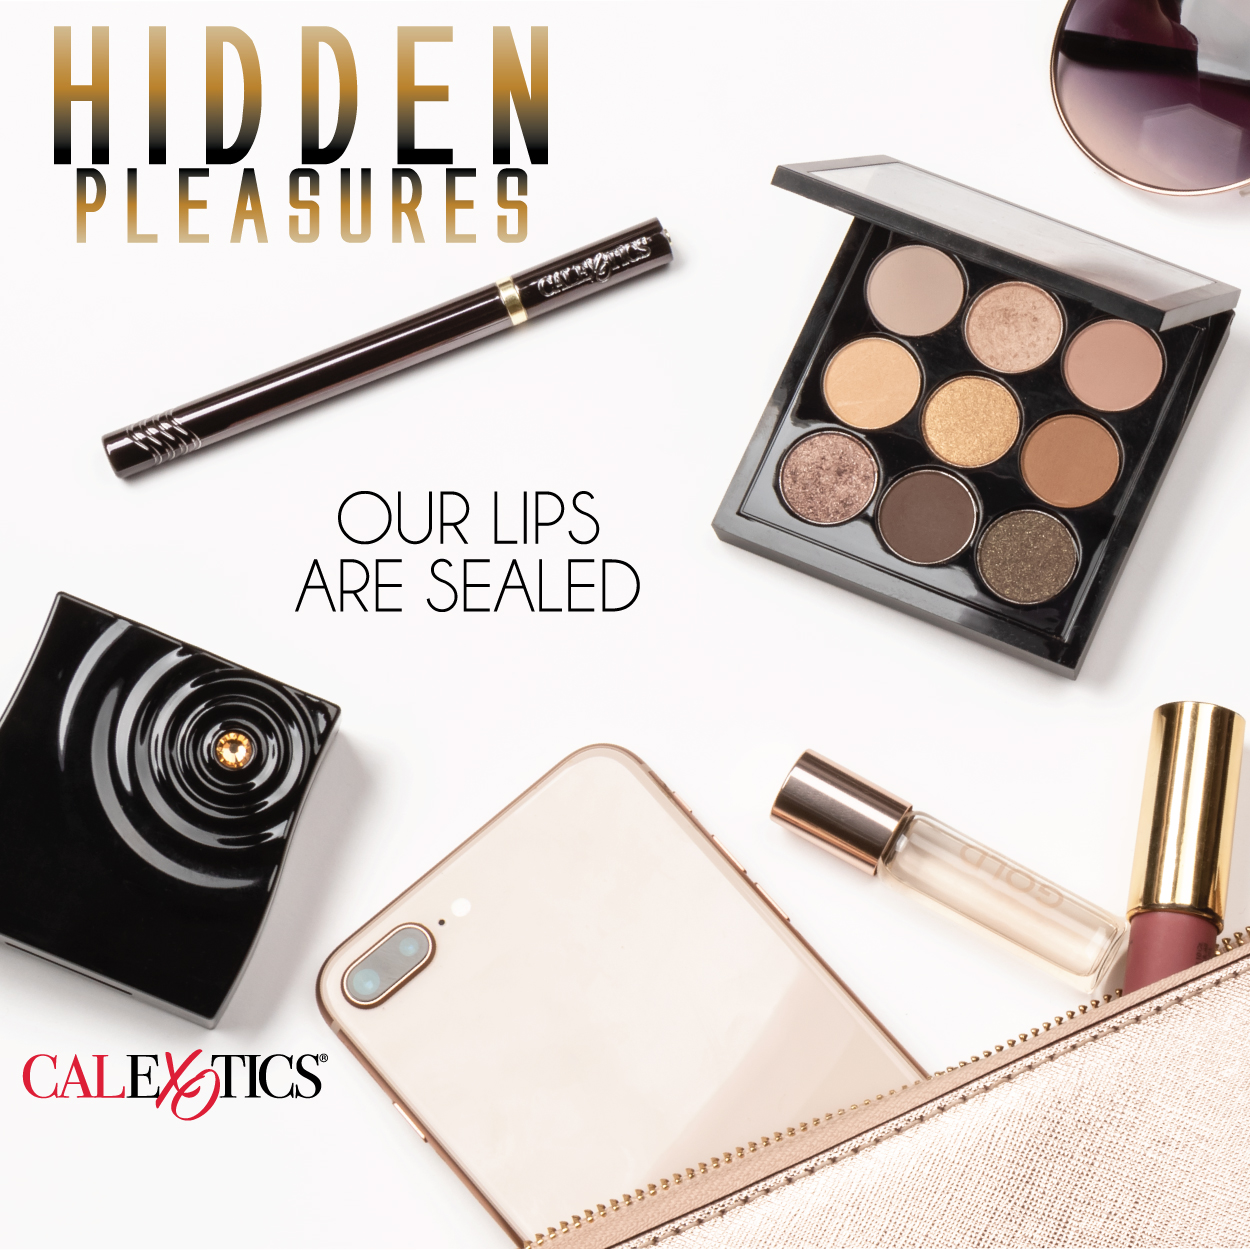 hiddenpleasures_social_1500x1500_black